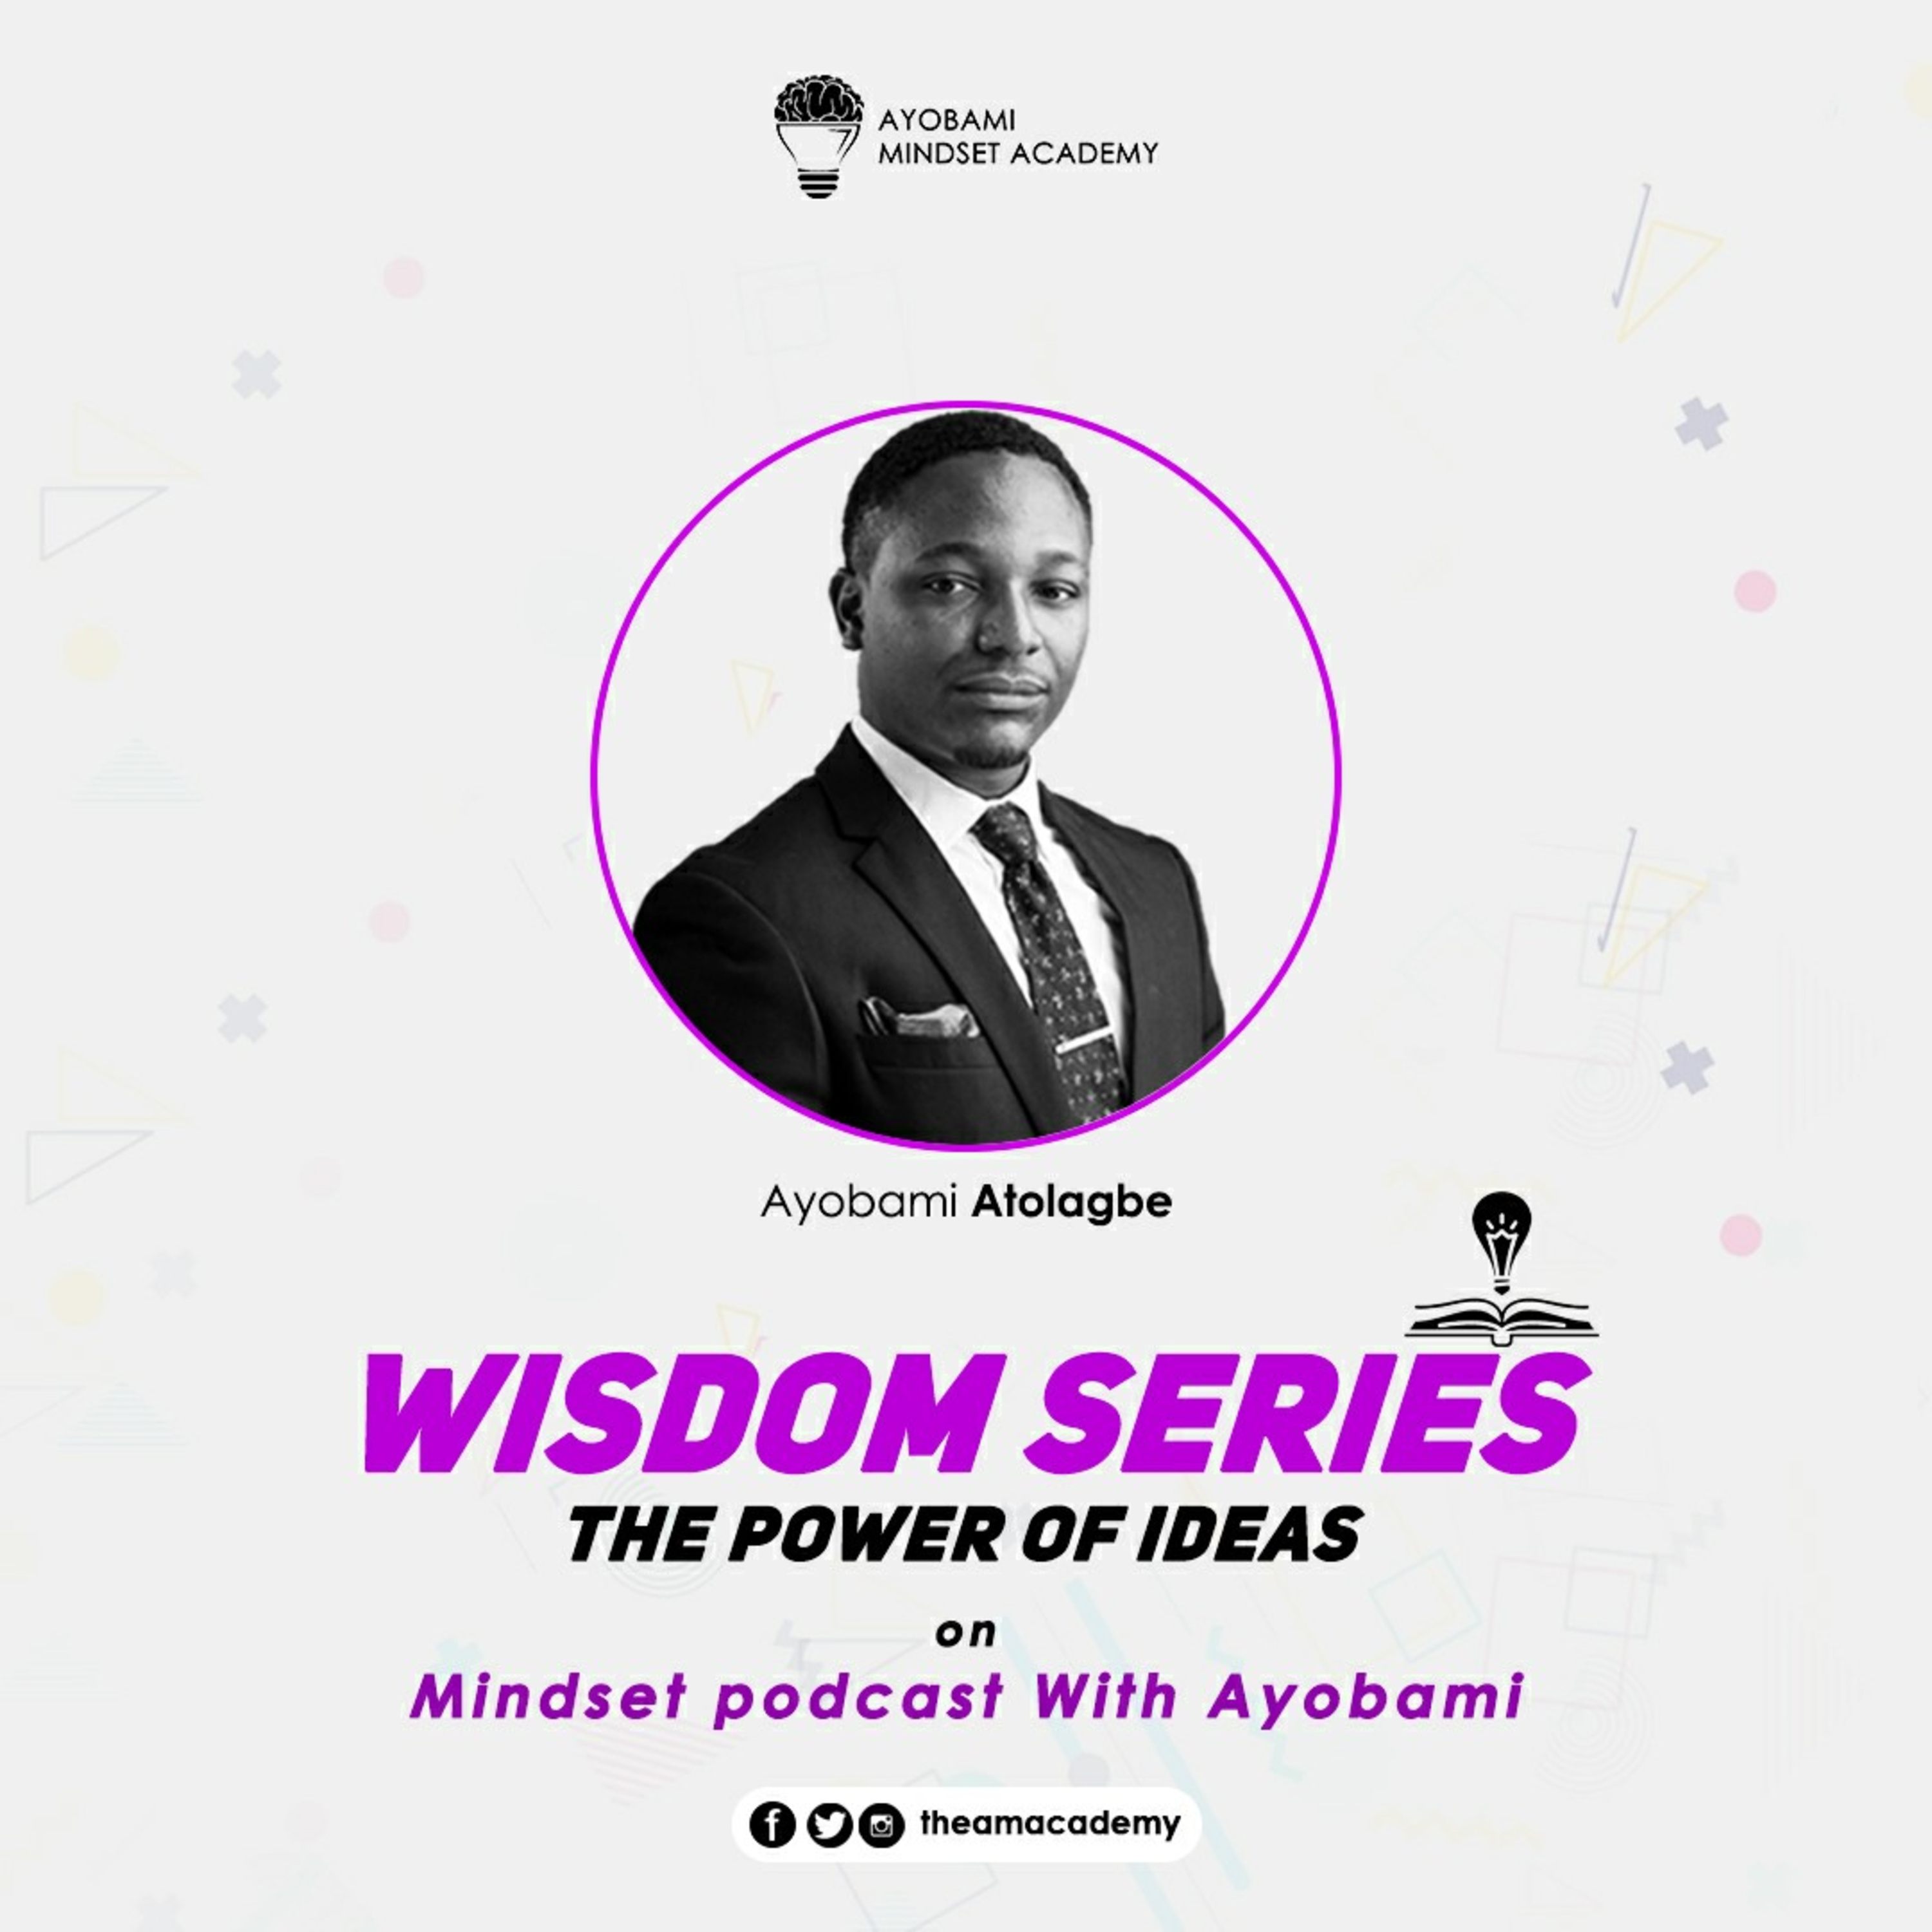 Mindset Podcast with Ayobami on Jamit